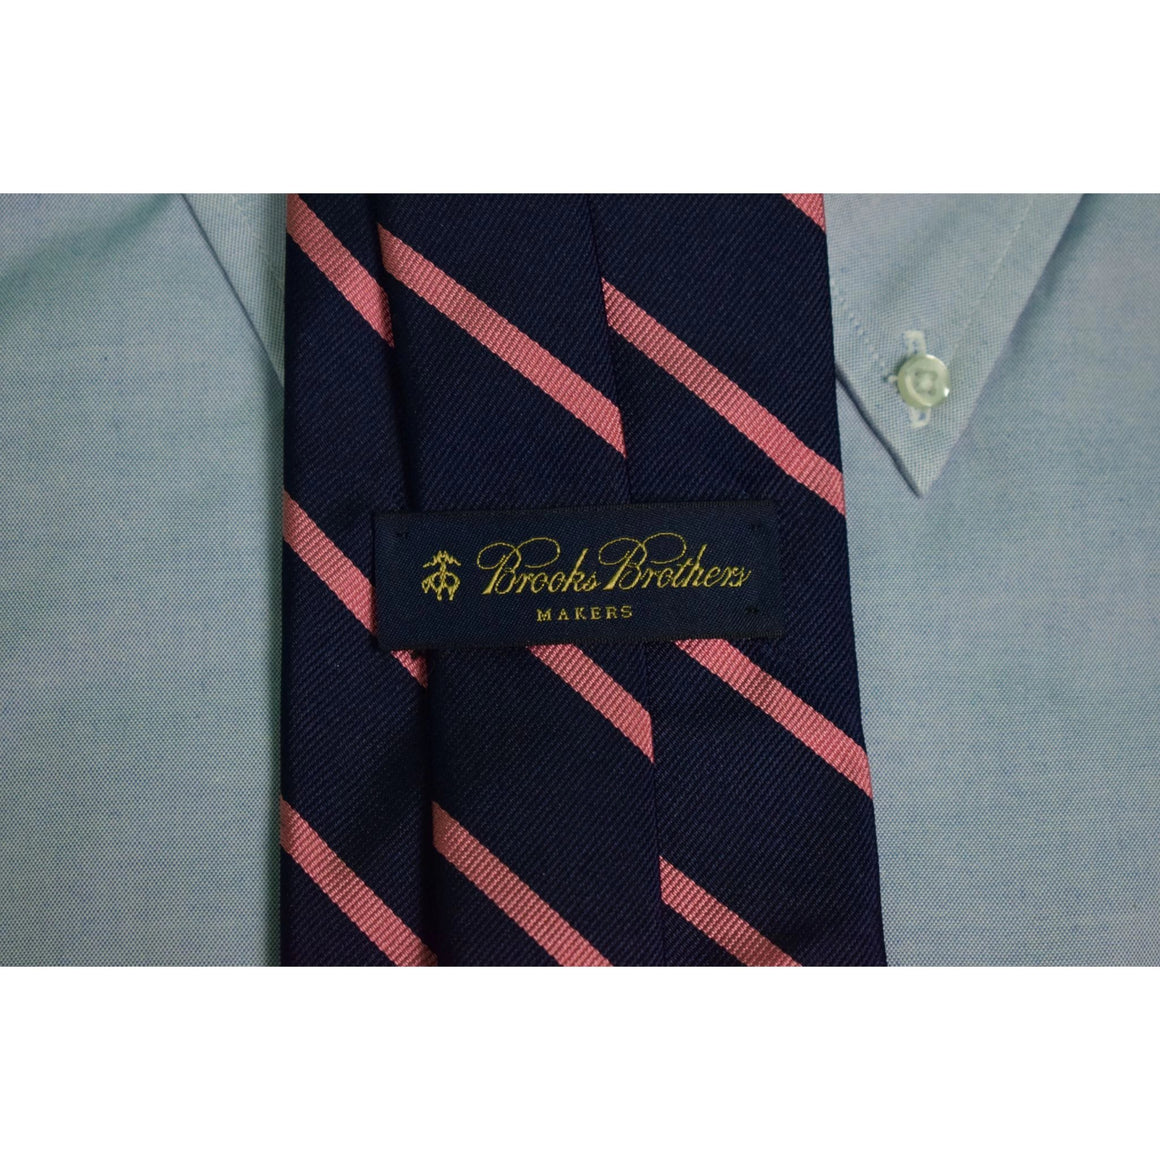 Brooks Brothers English Silk Repp Pink Stripe Navy Tie